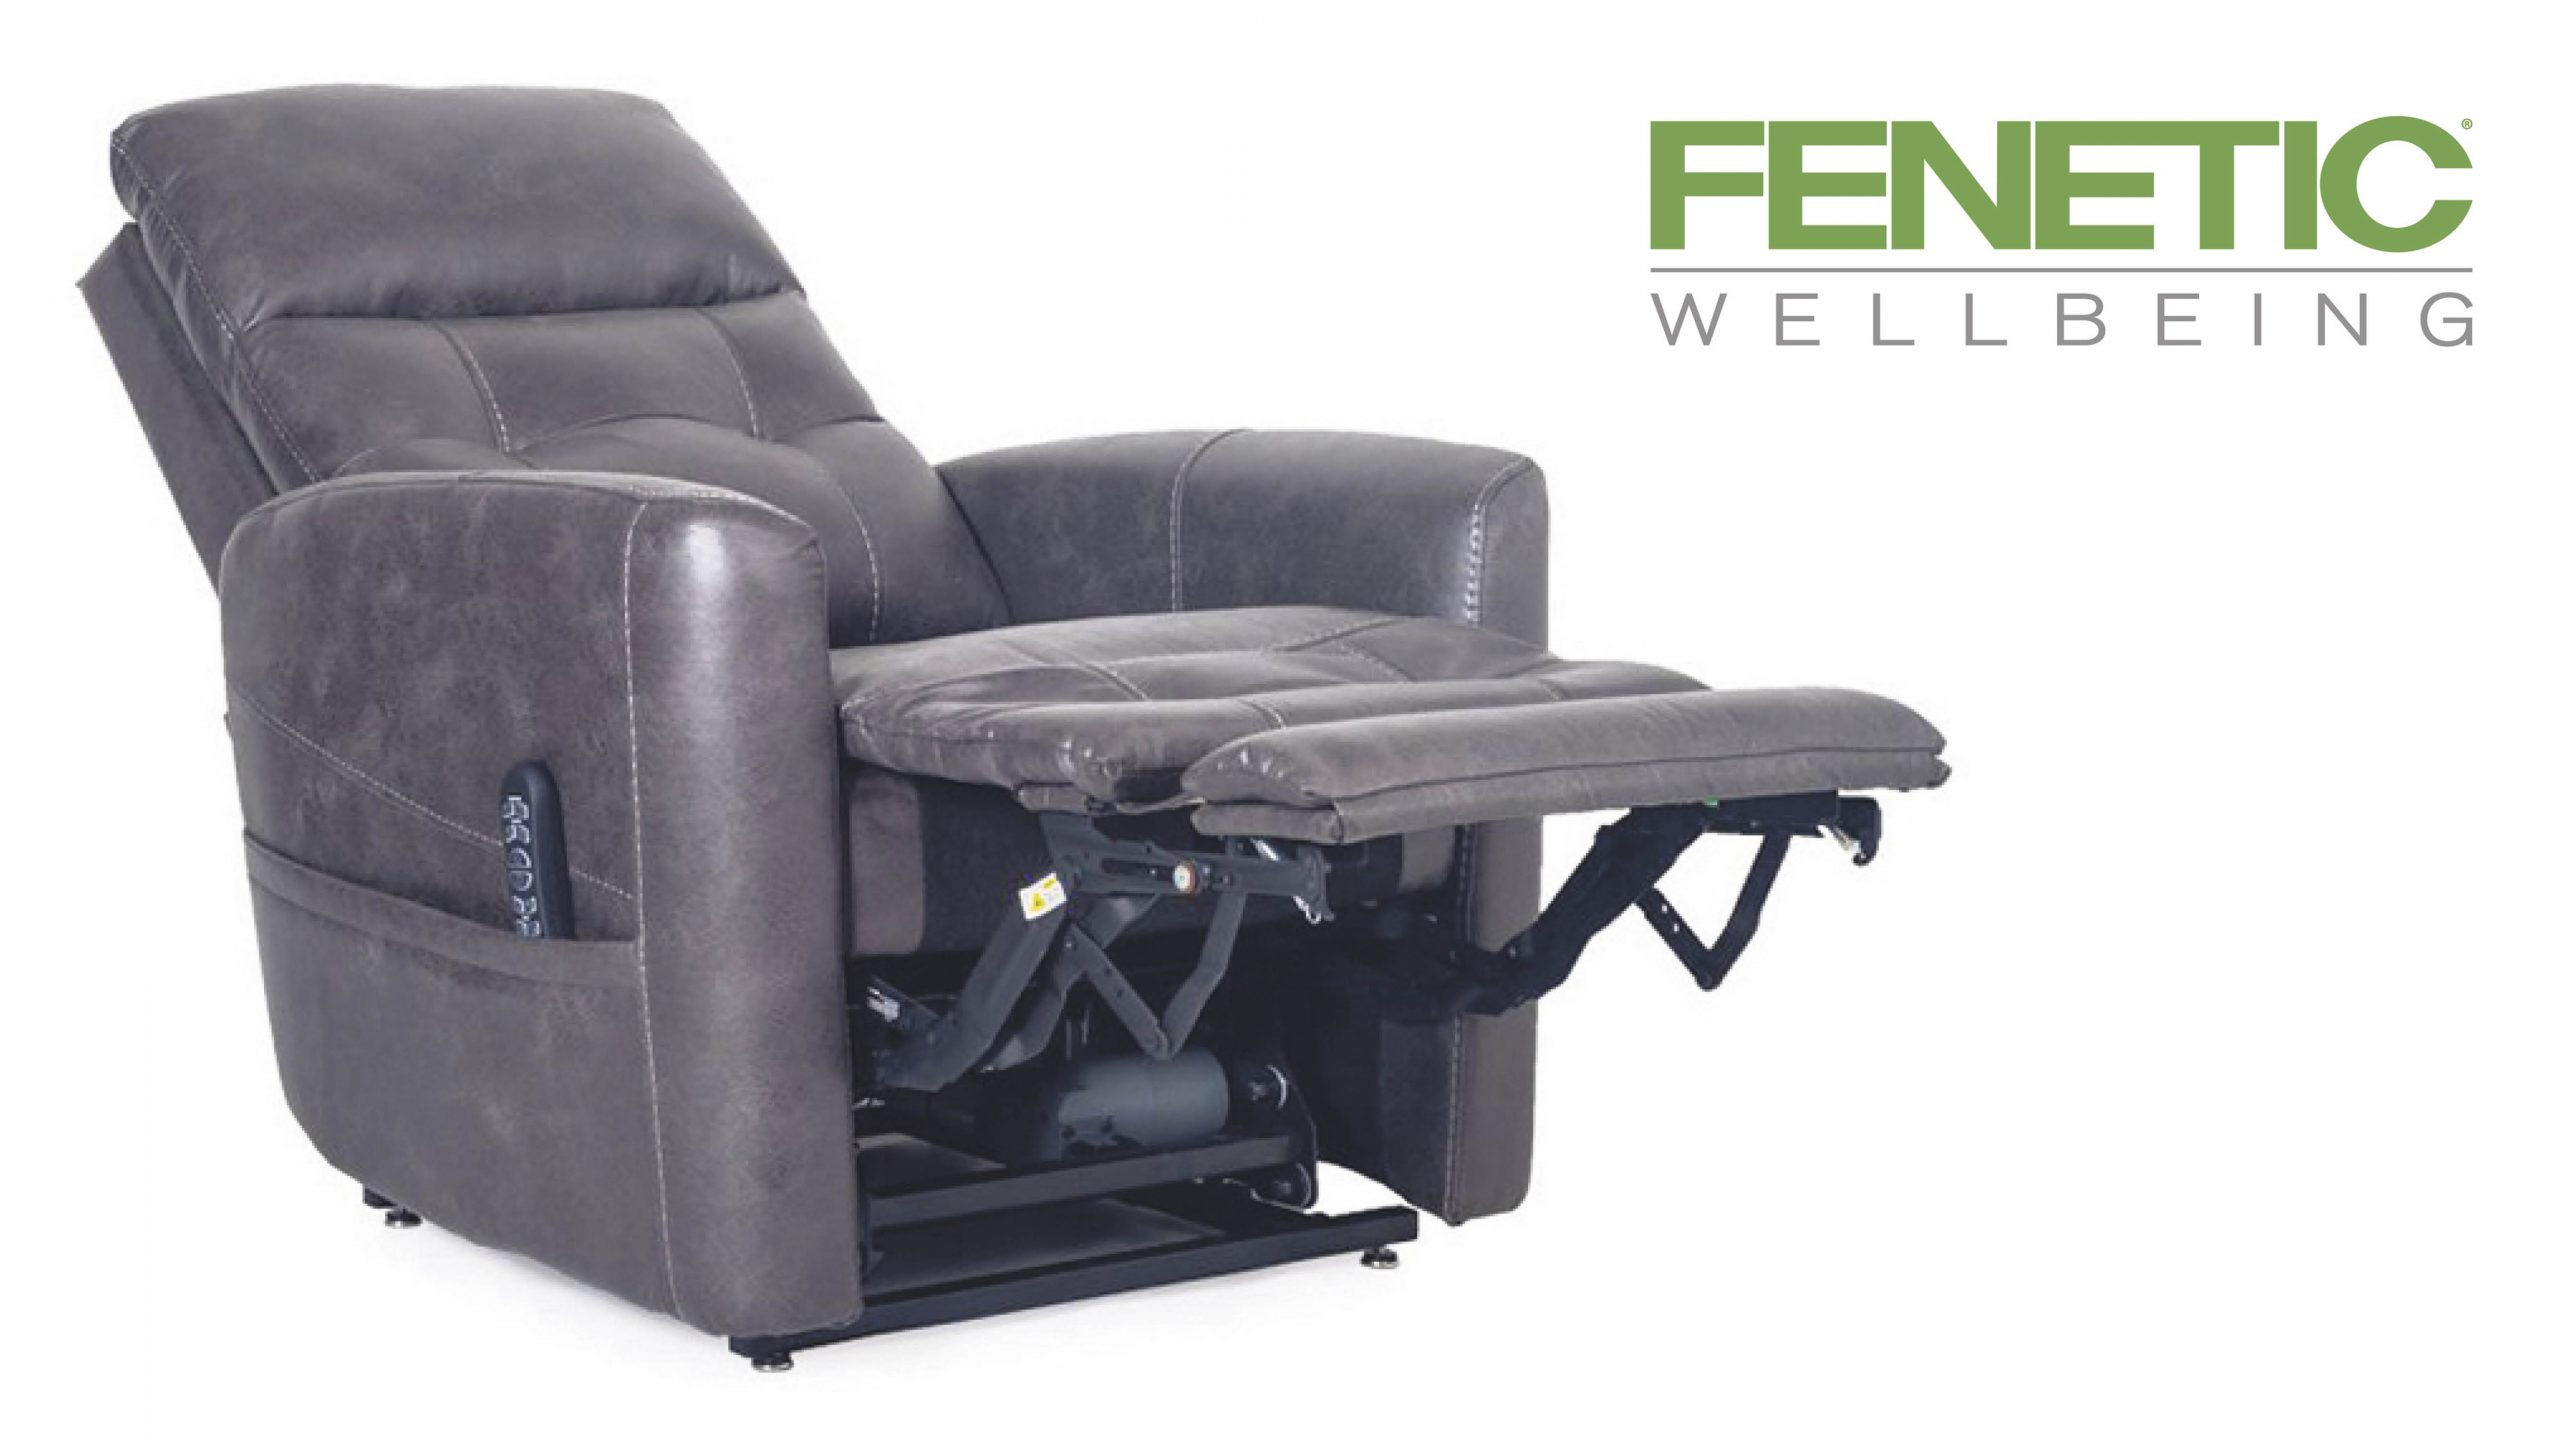 Win a riser recliner chair Worth over £1,000!